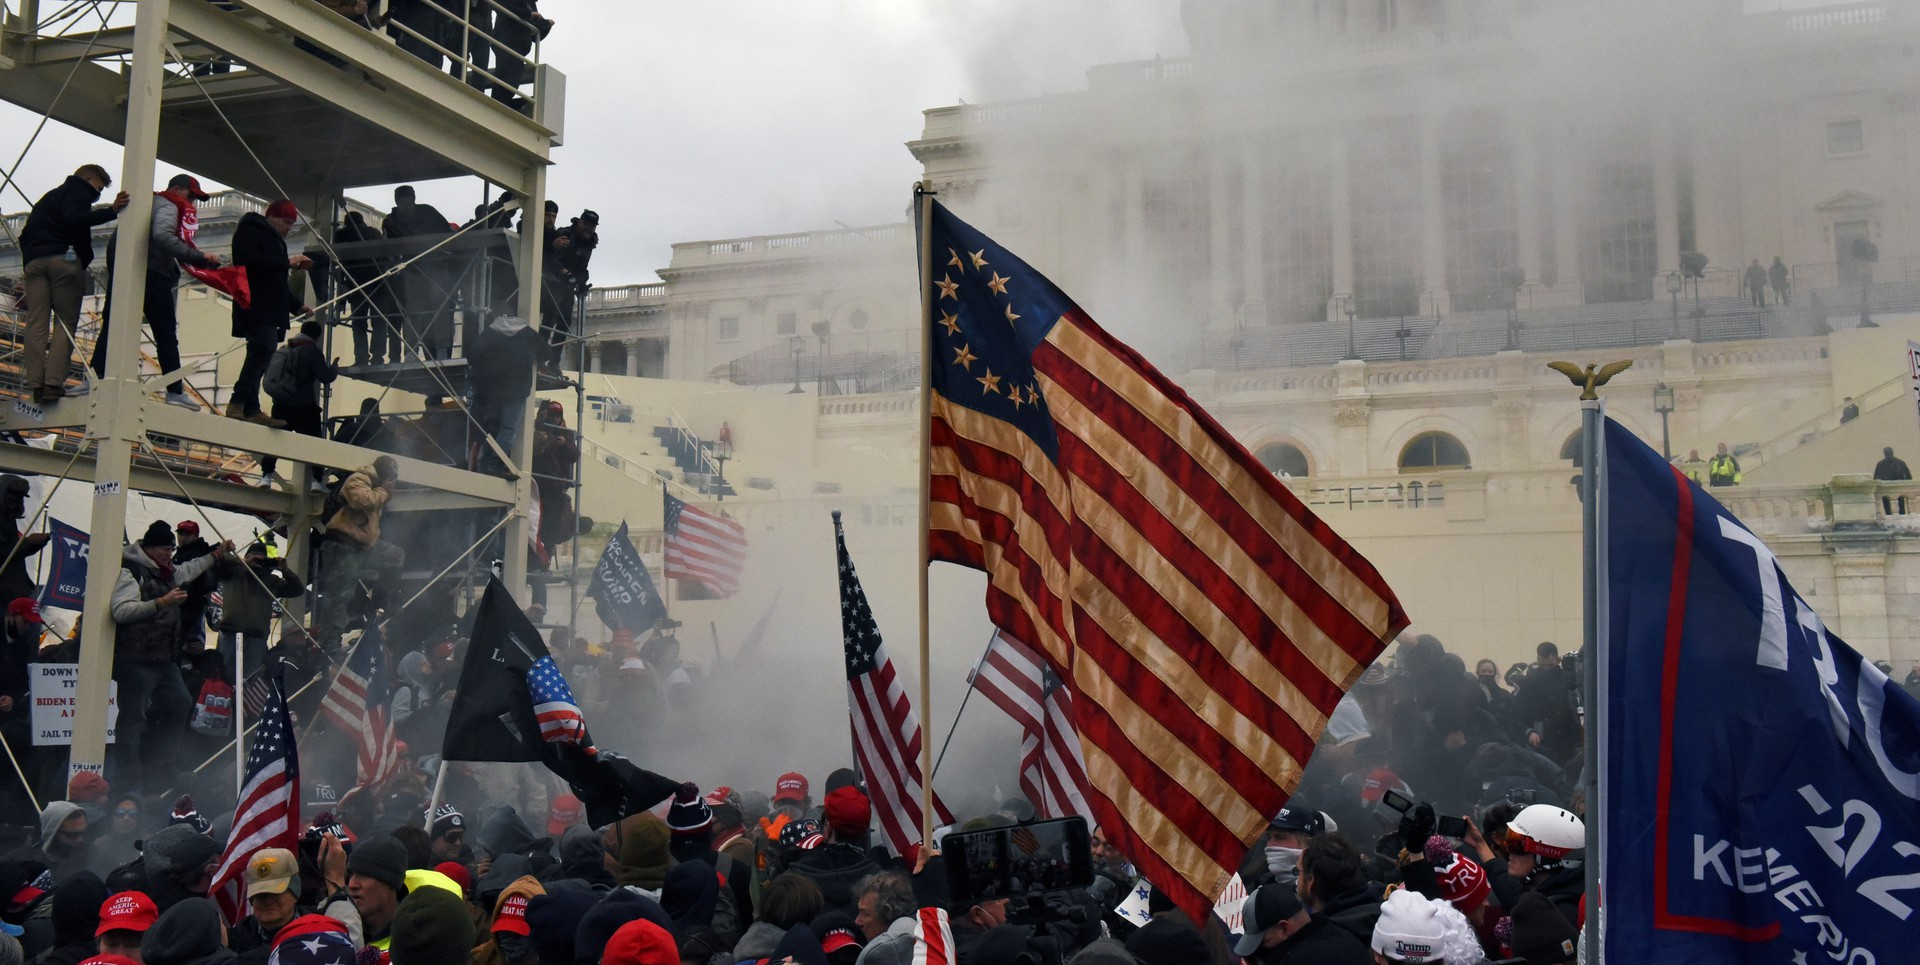 Insurrectionists at the Capitol